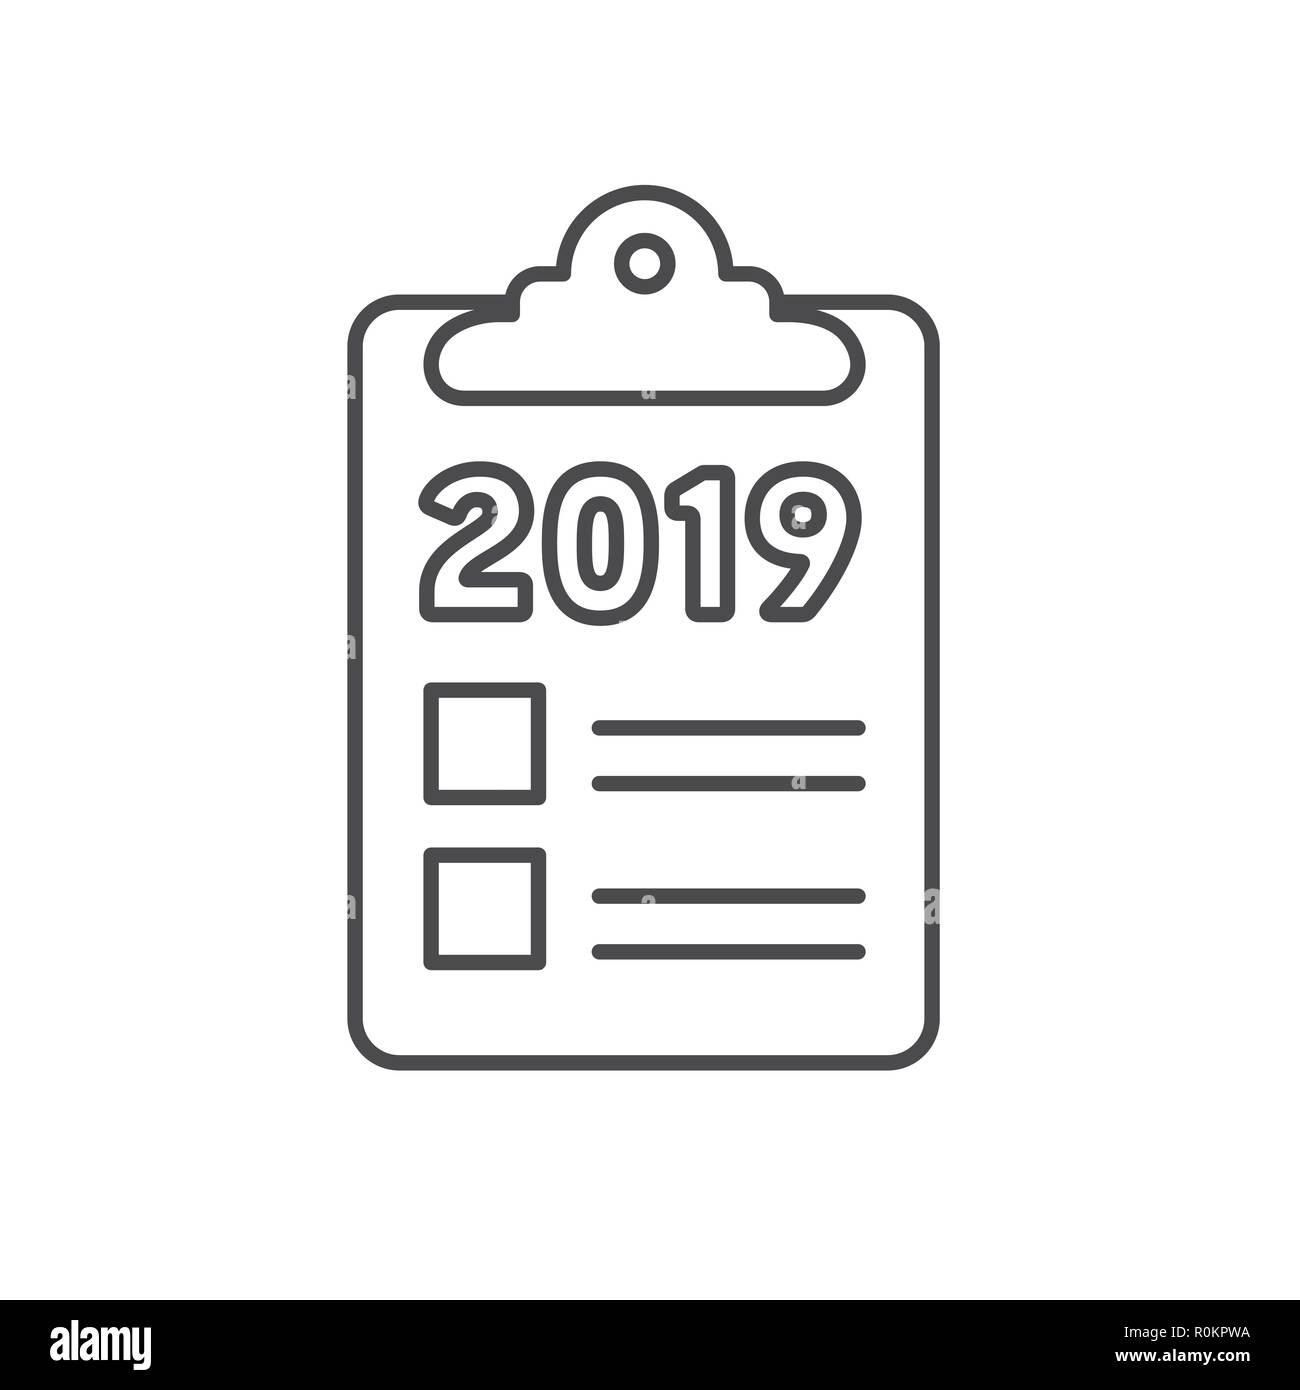 2019 Goals Vector graphic with year 2019 and artistically styled images Stock Vector